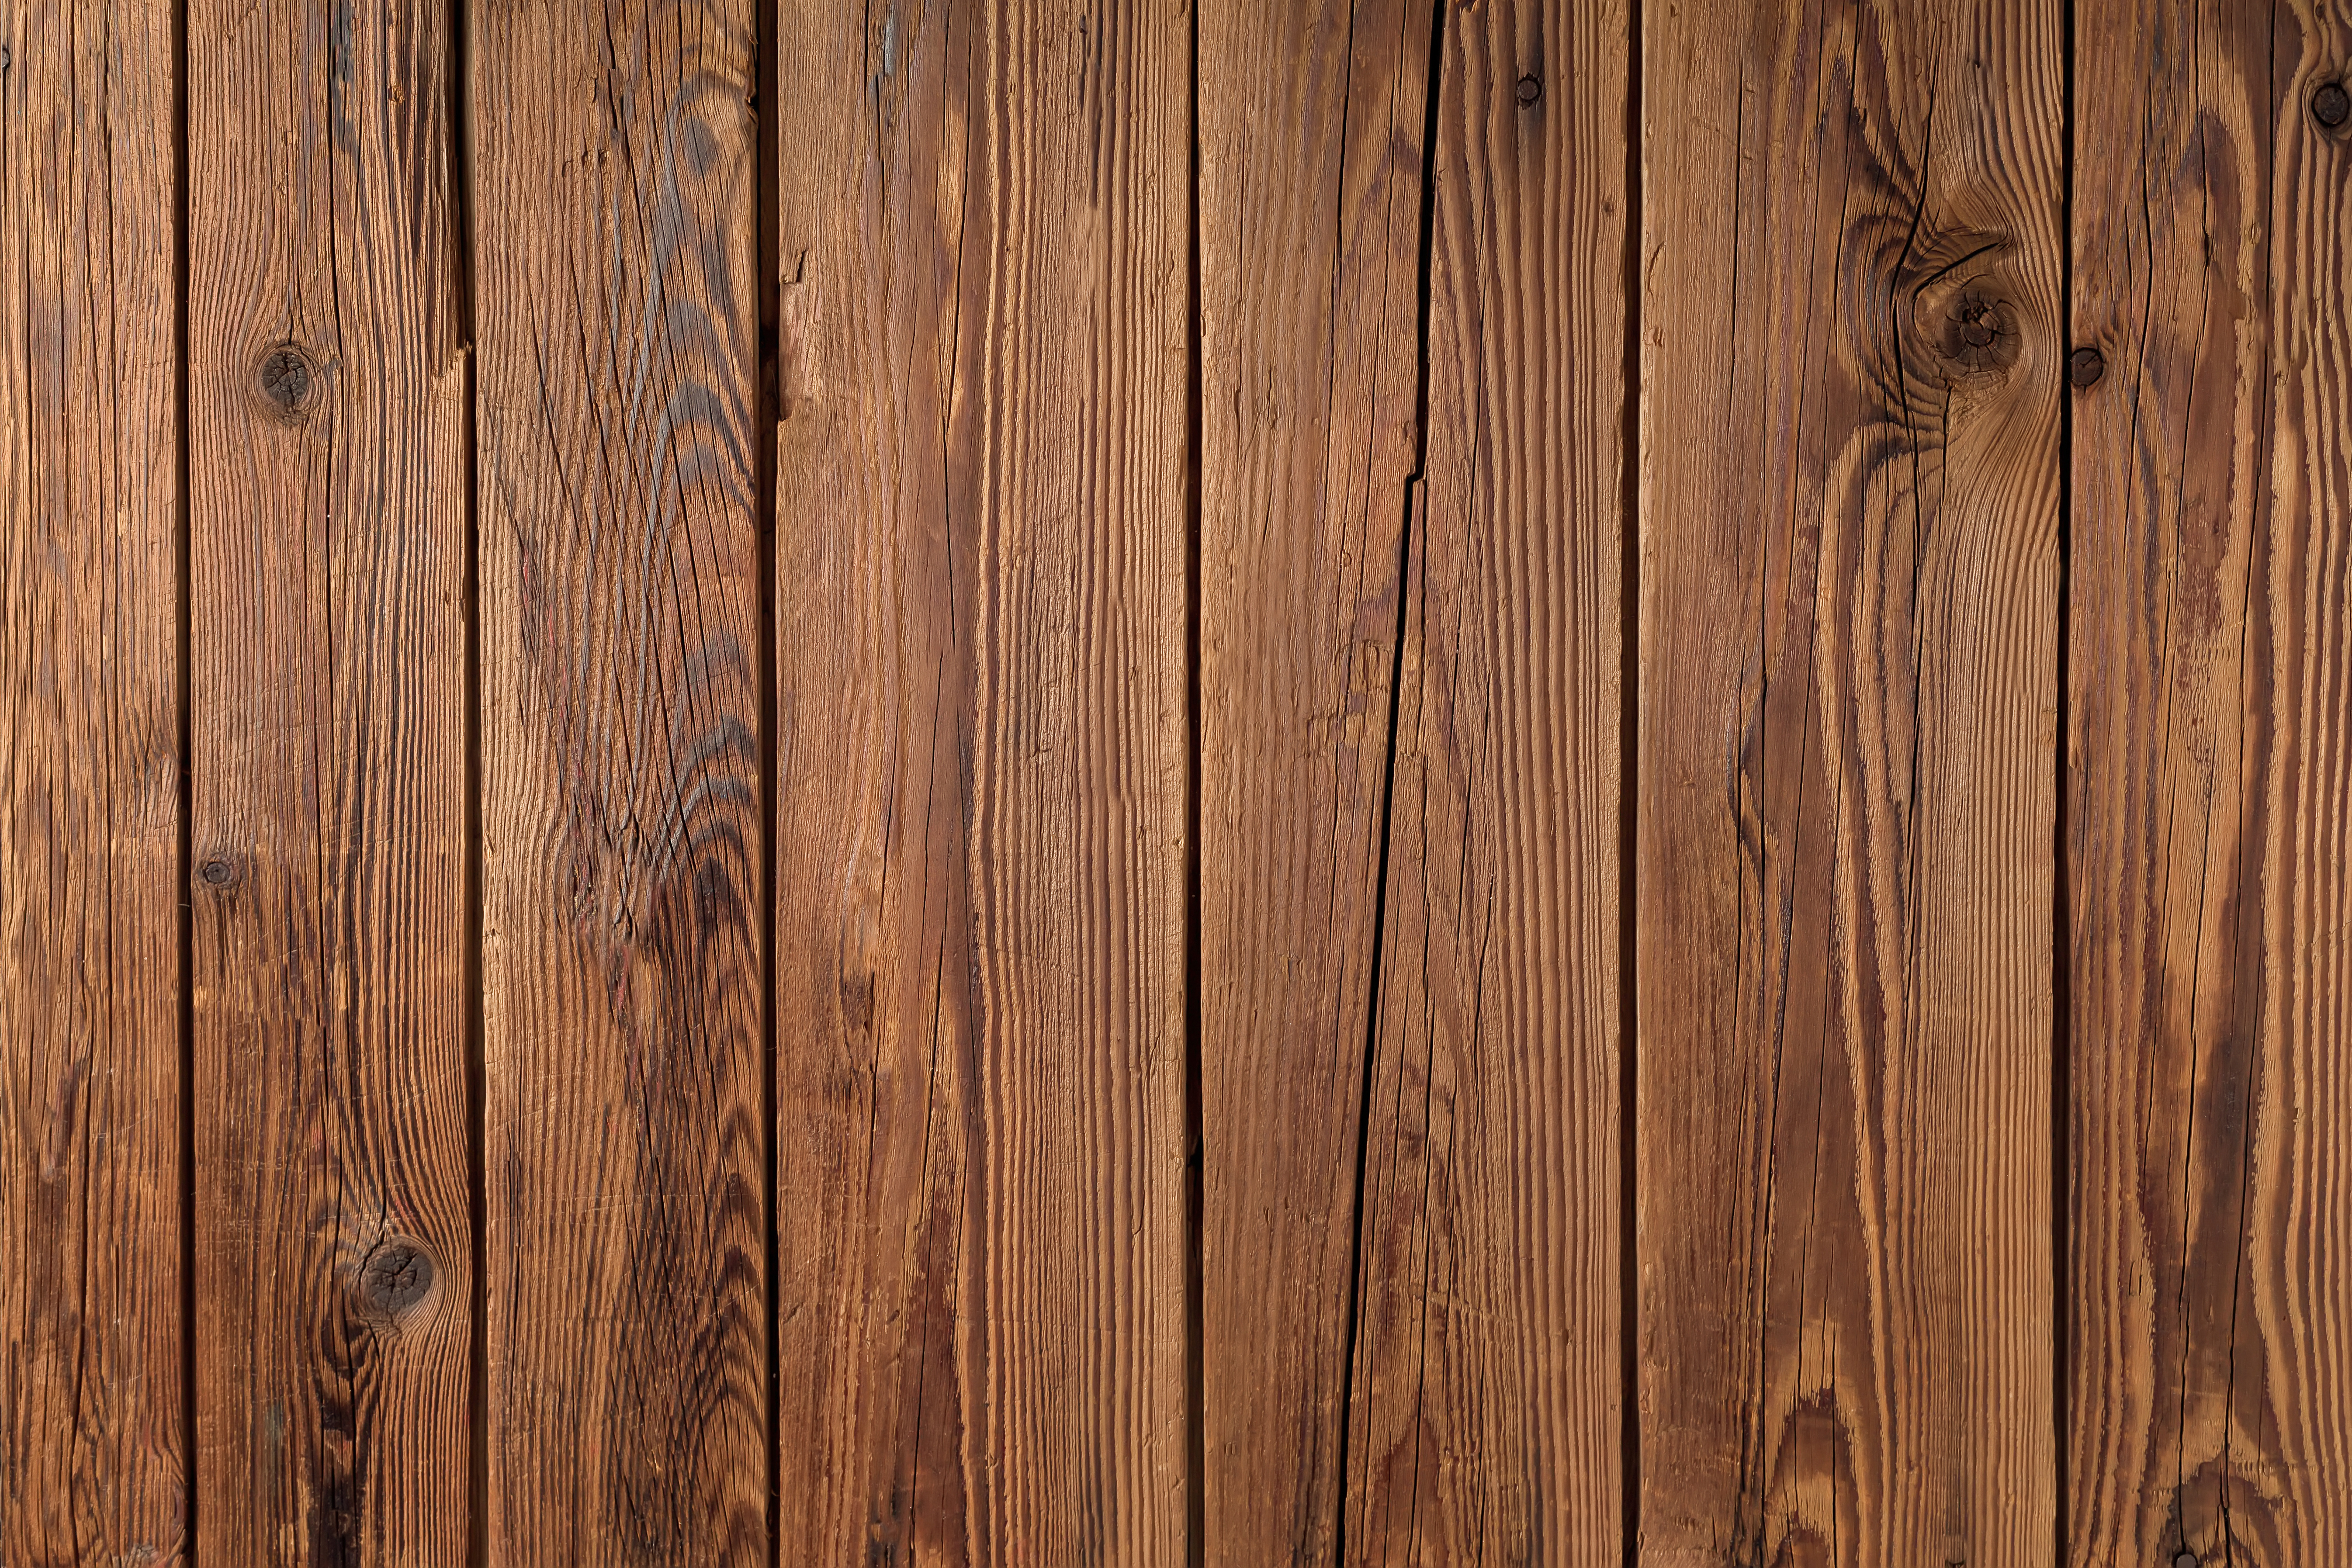 Wooden Texture Background Gallery Yopriceville   High Quality 5000x3333